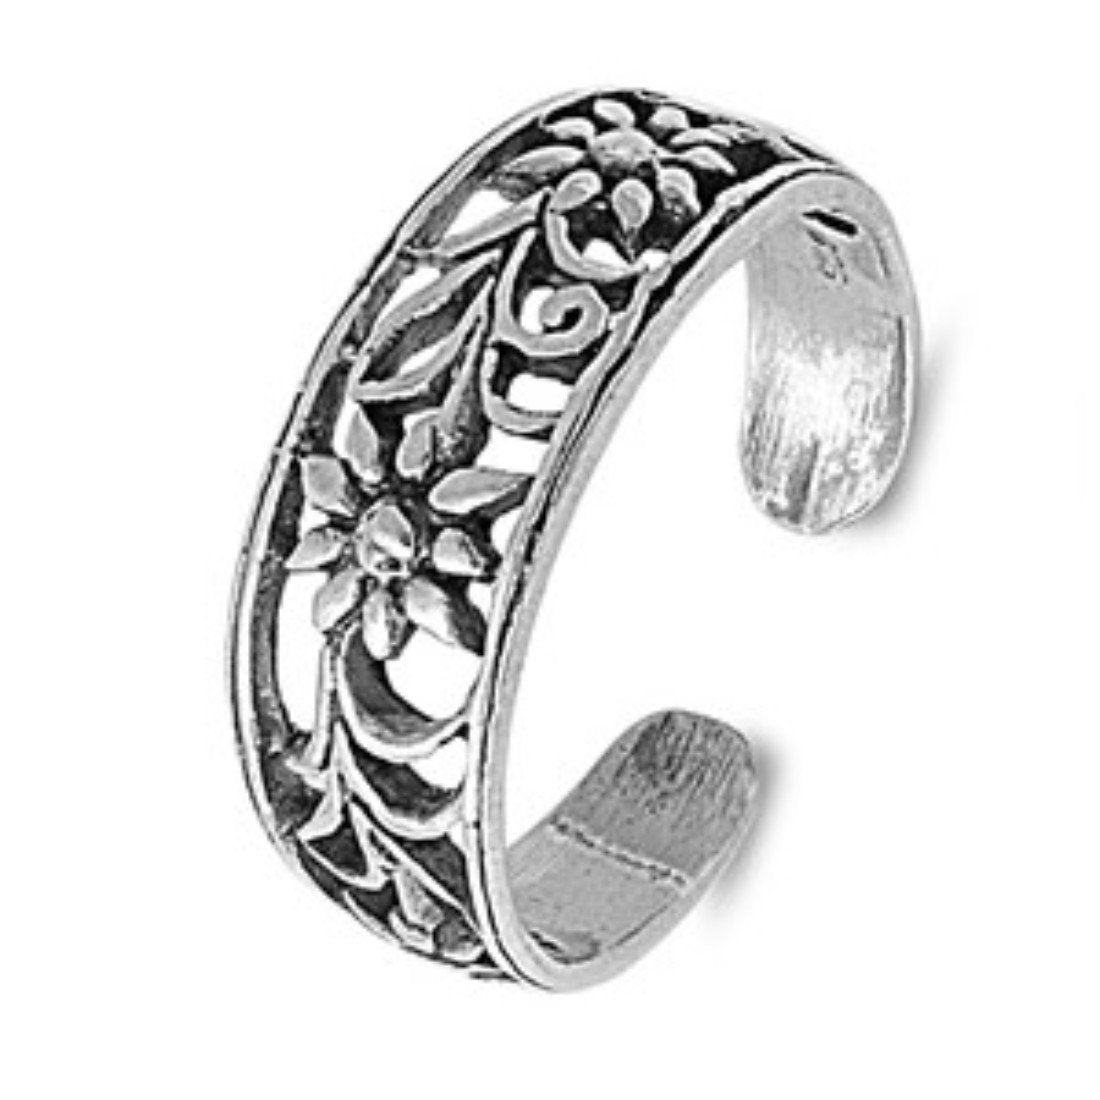 Flower Adjustable Silver Toe Ring Band For Women 925 Sterling Silver (6mm)